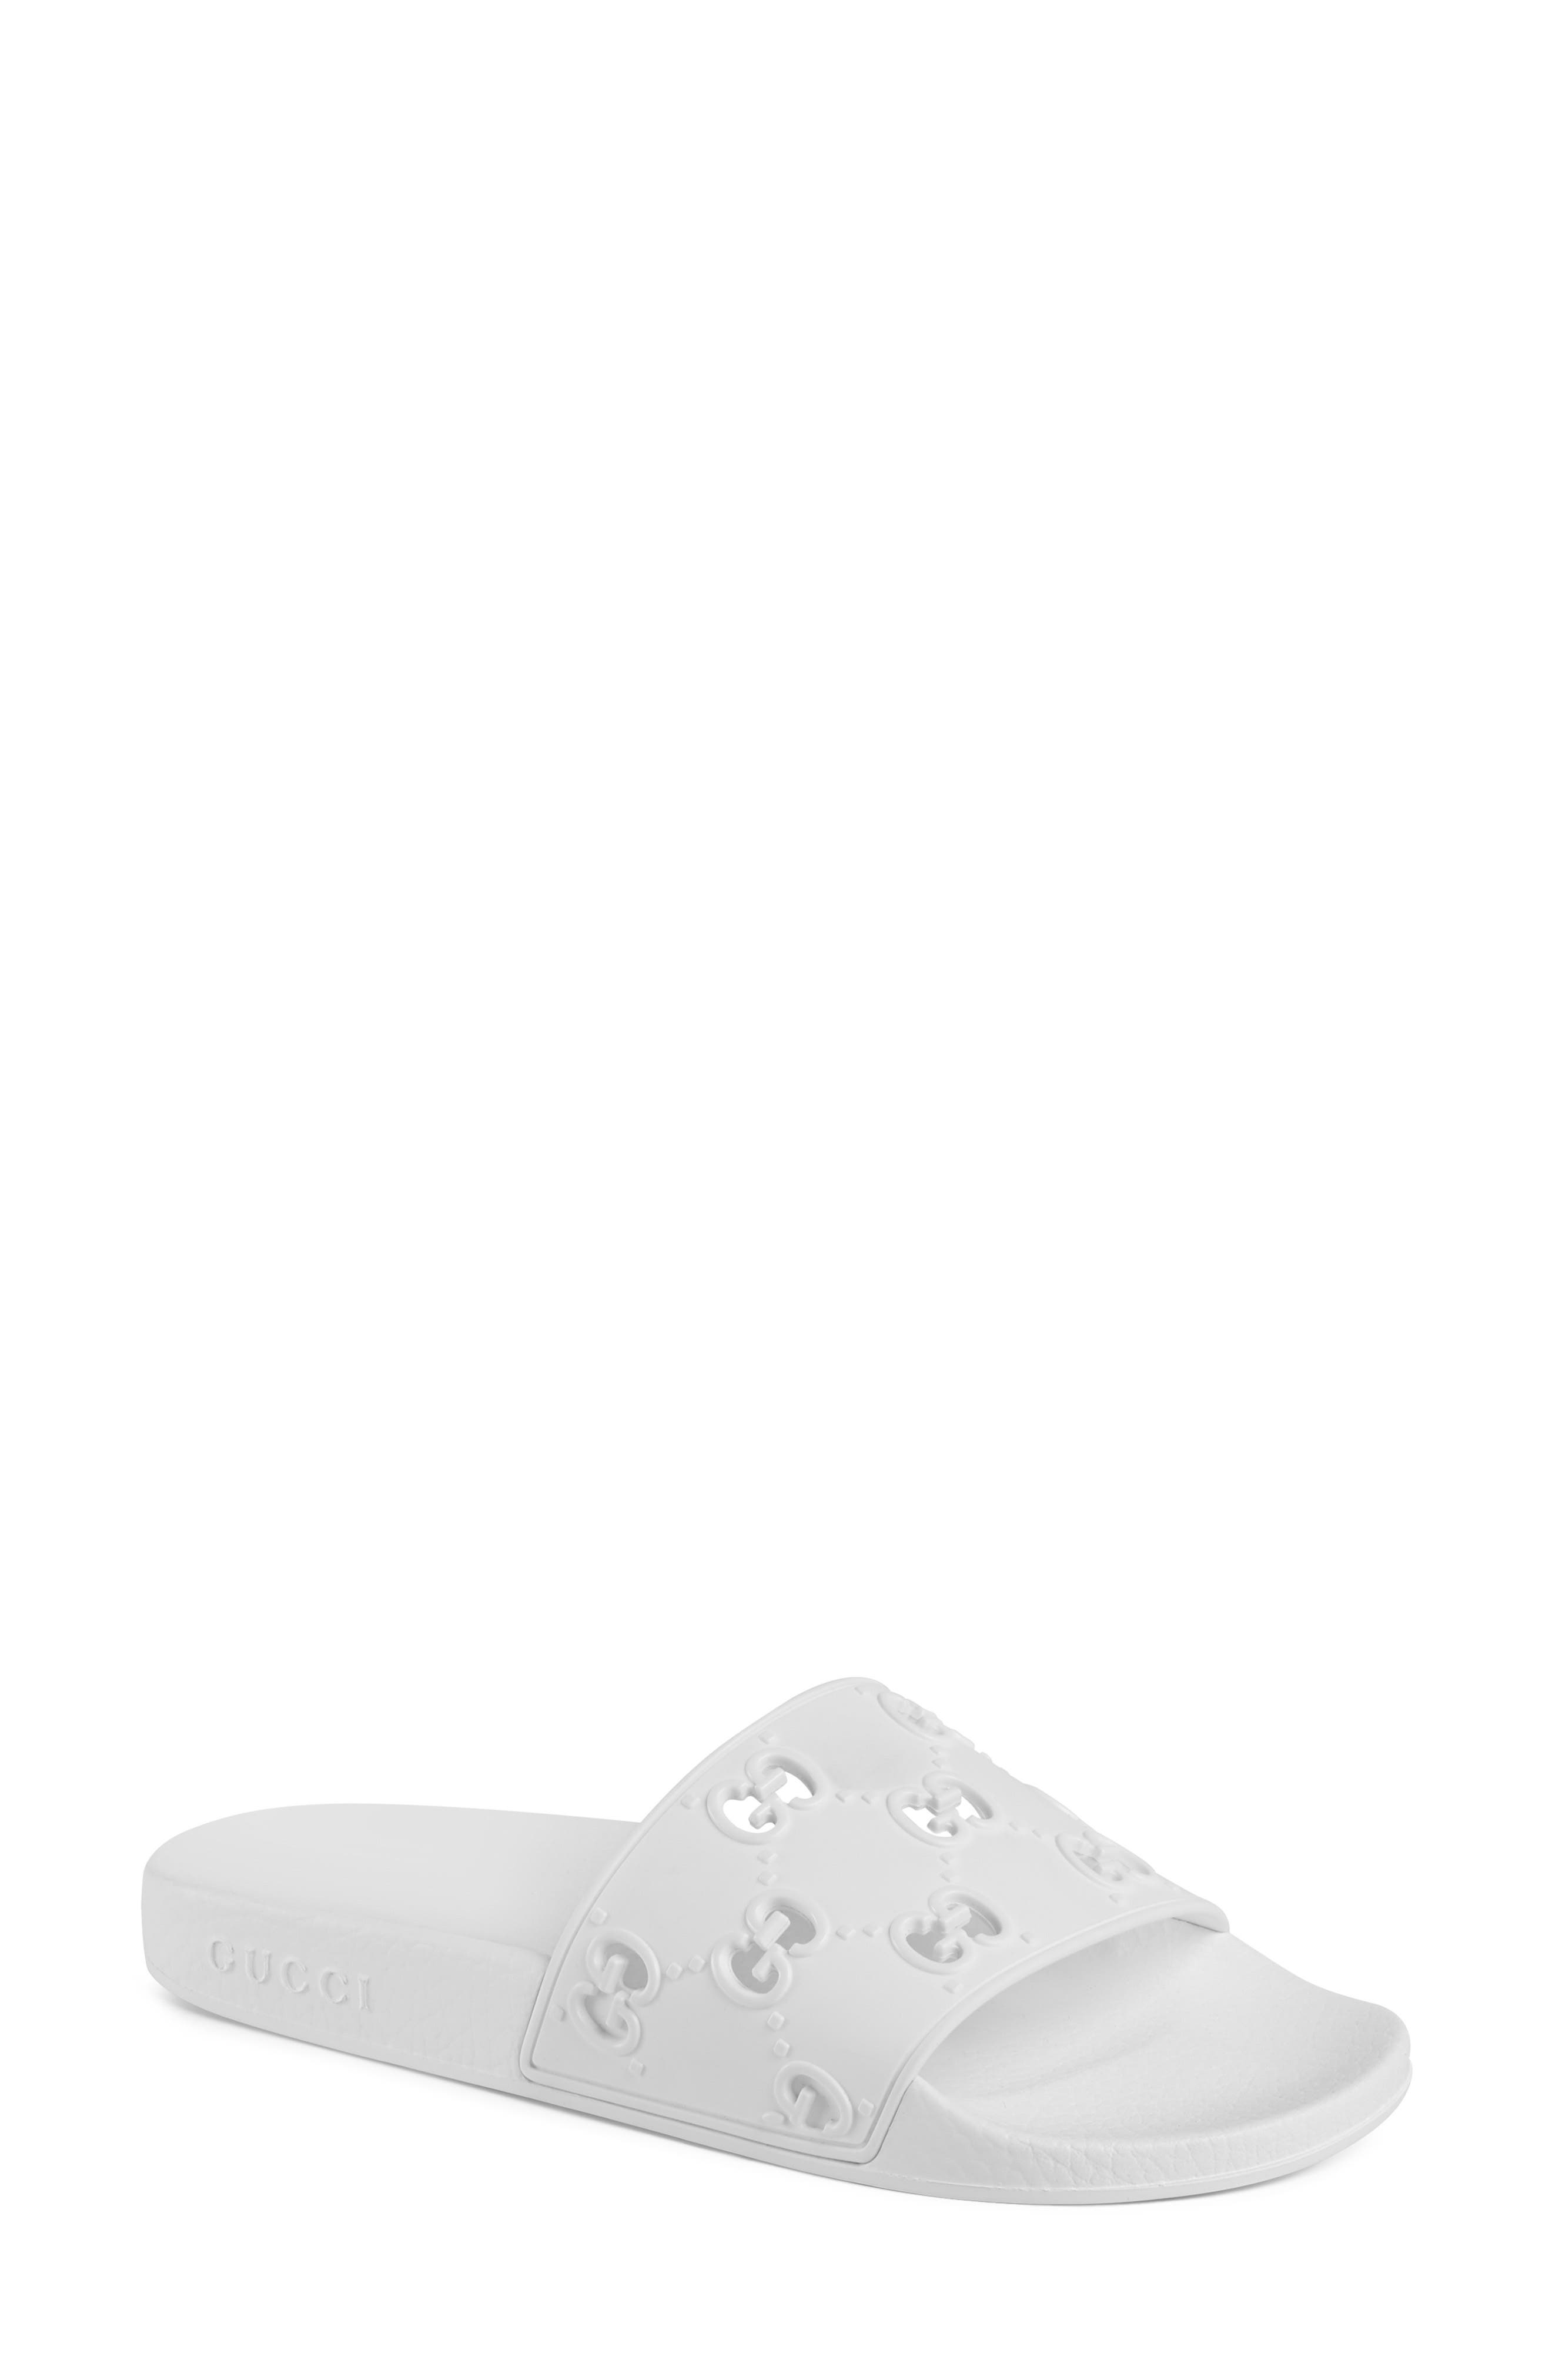 Women's Gucci Shoes | Nordstrom